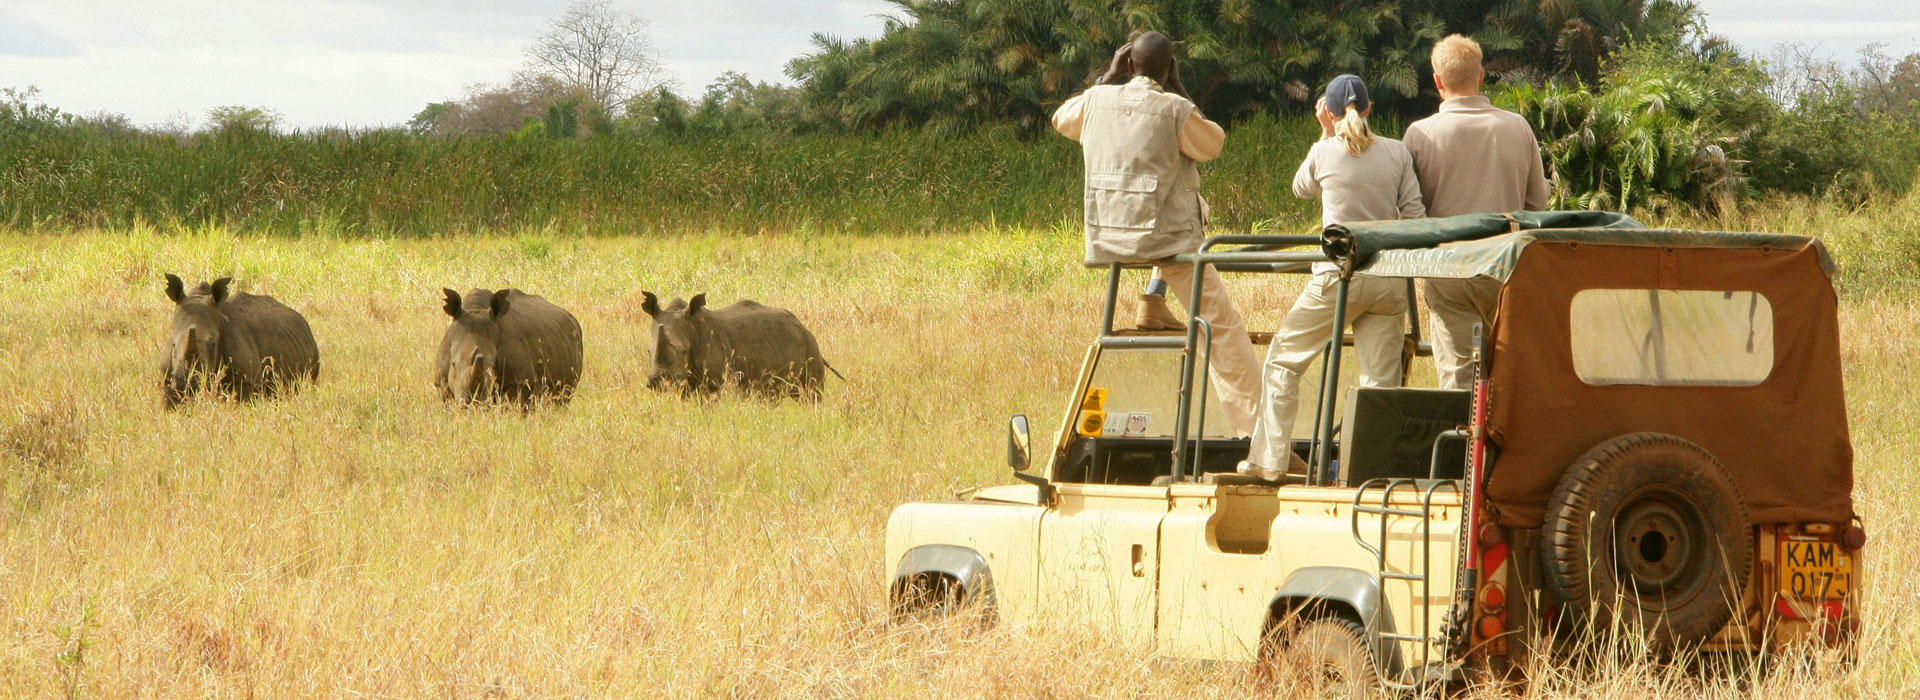 Kenya Safari Tipping